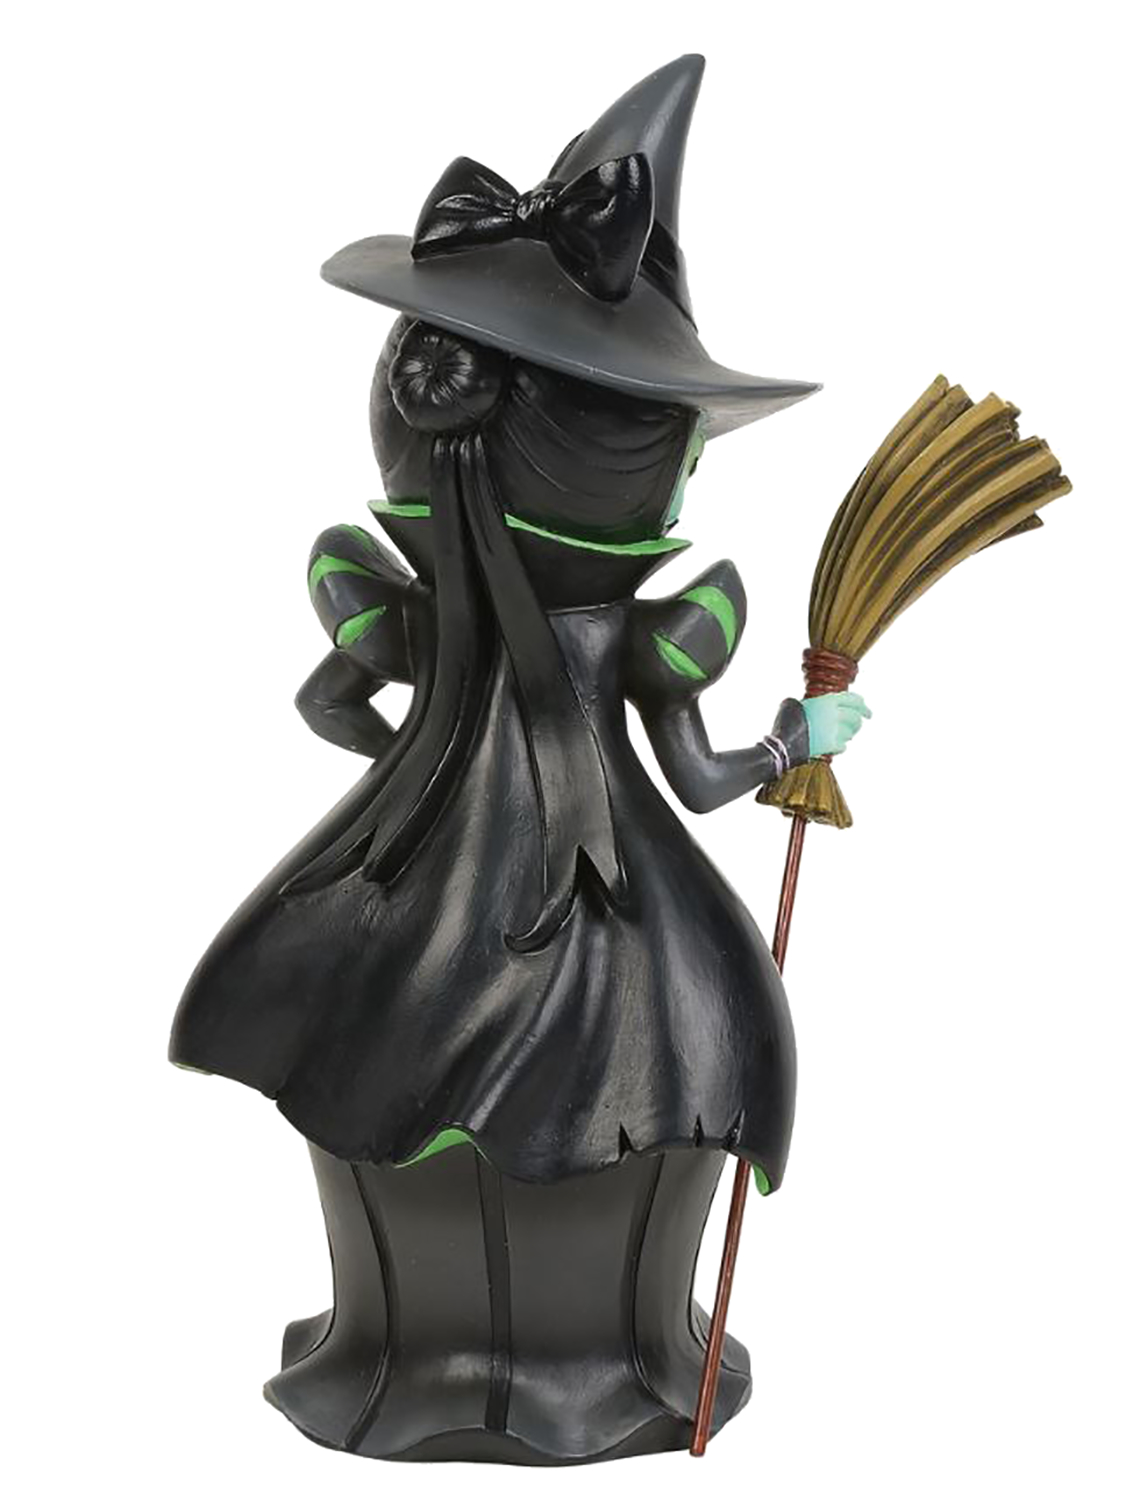 MISS MINDY WIZARD OF OZ WICKED WITCH DELUXE FIGURE